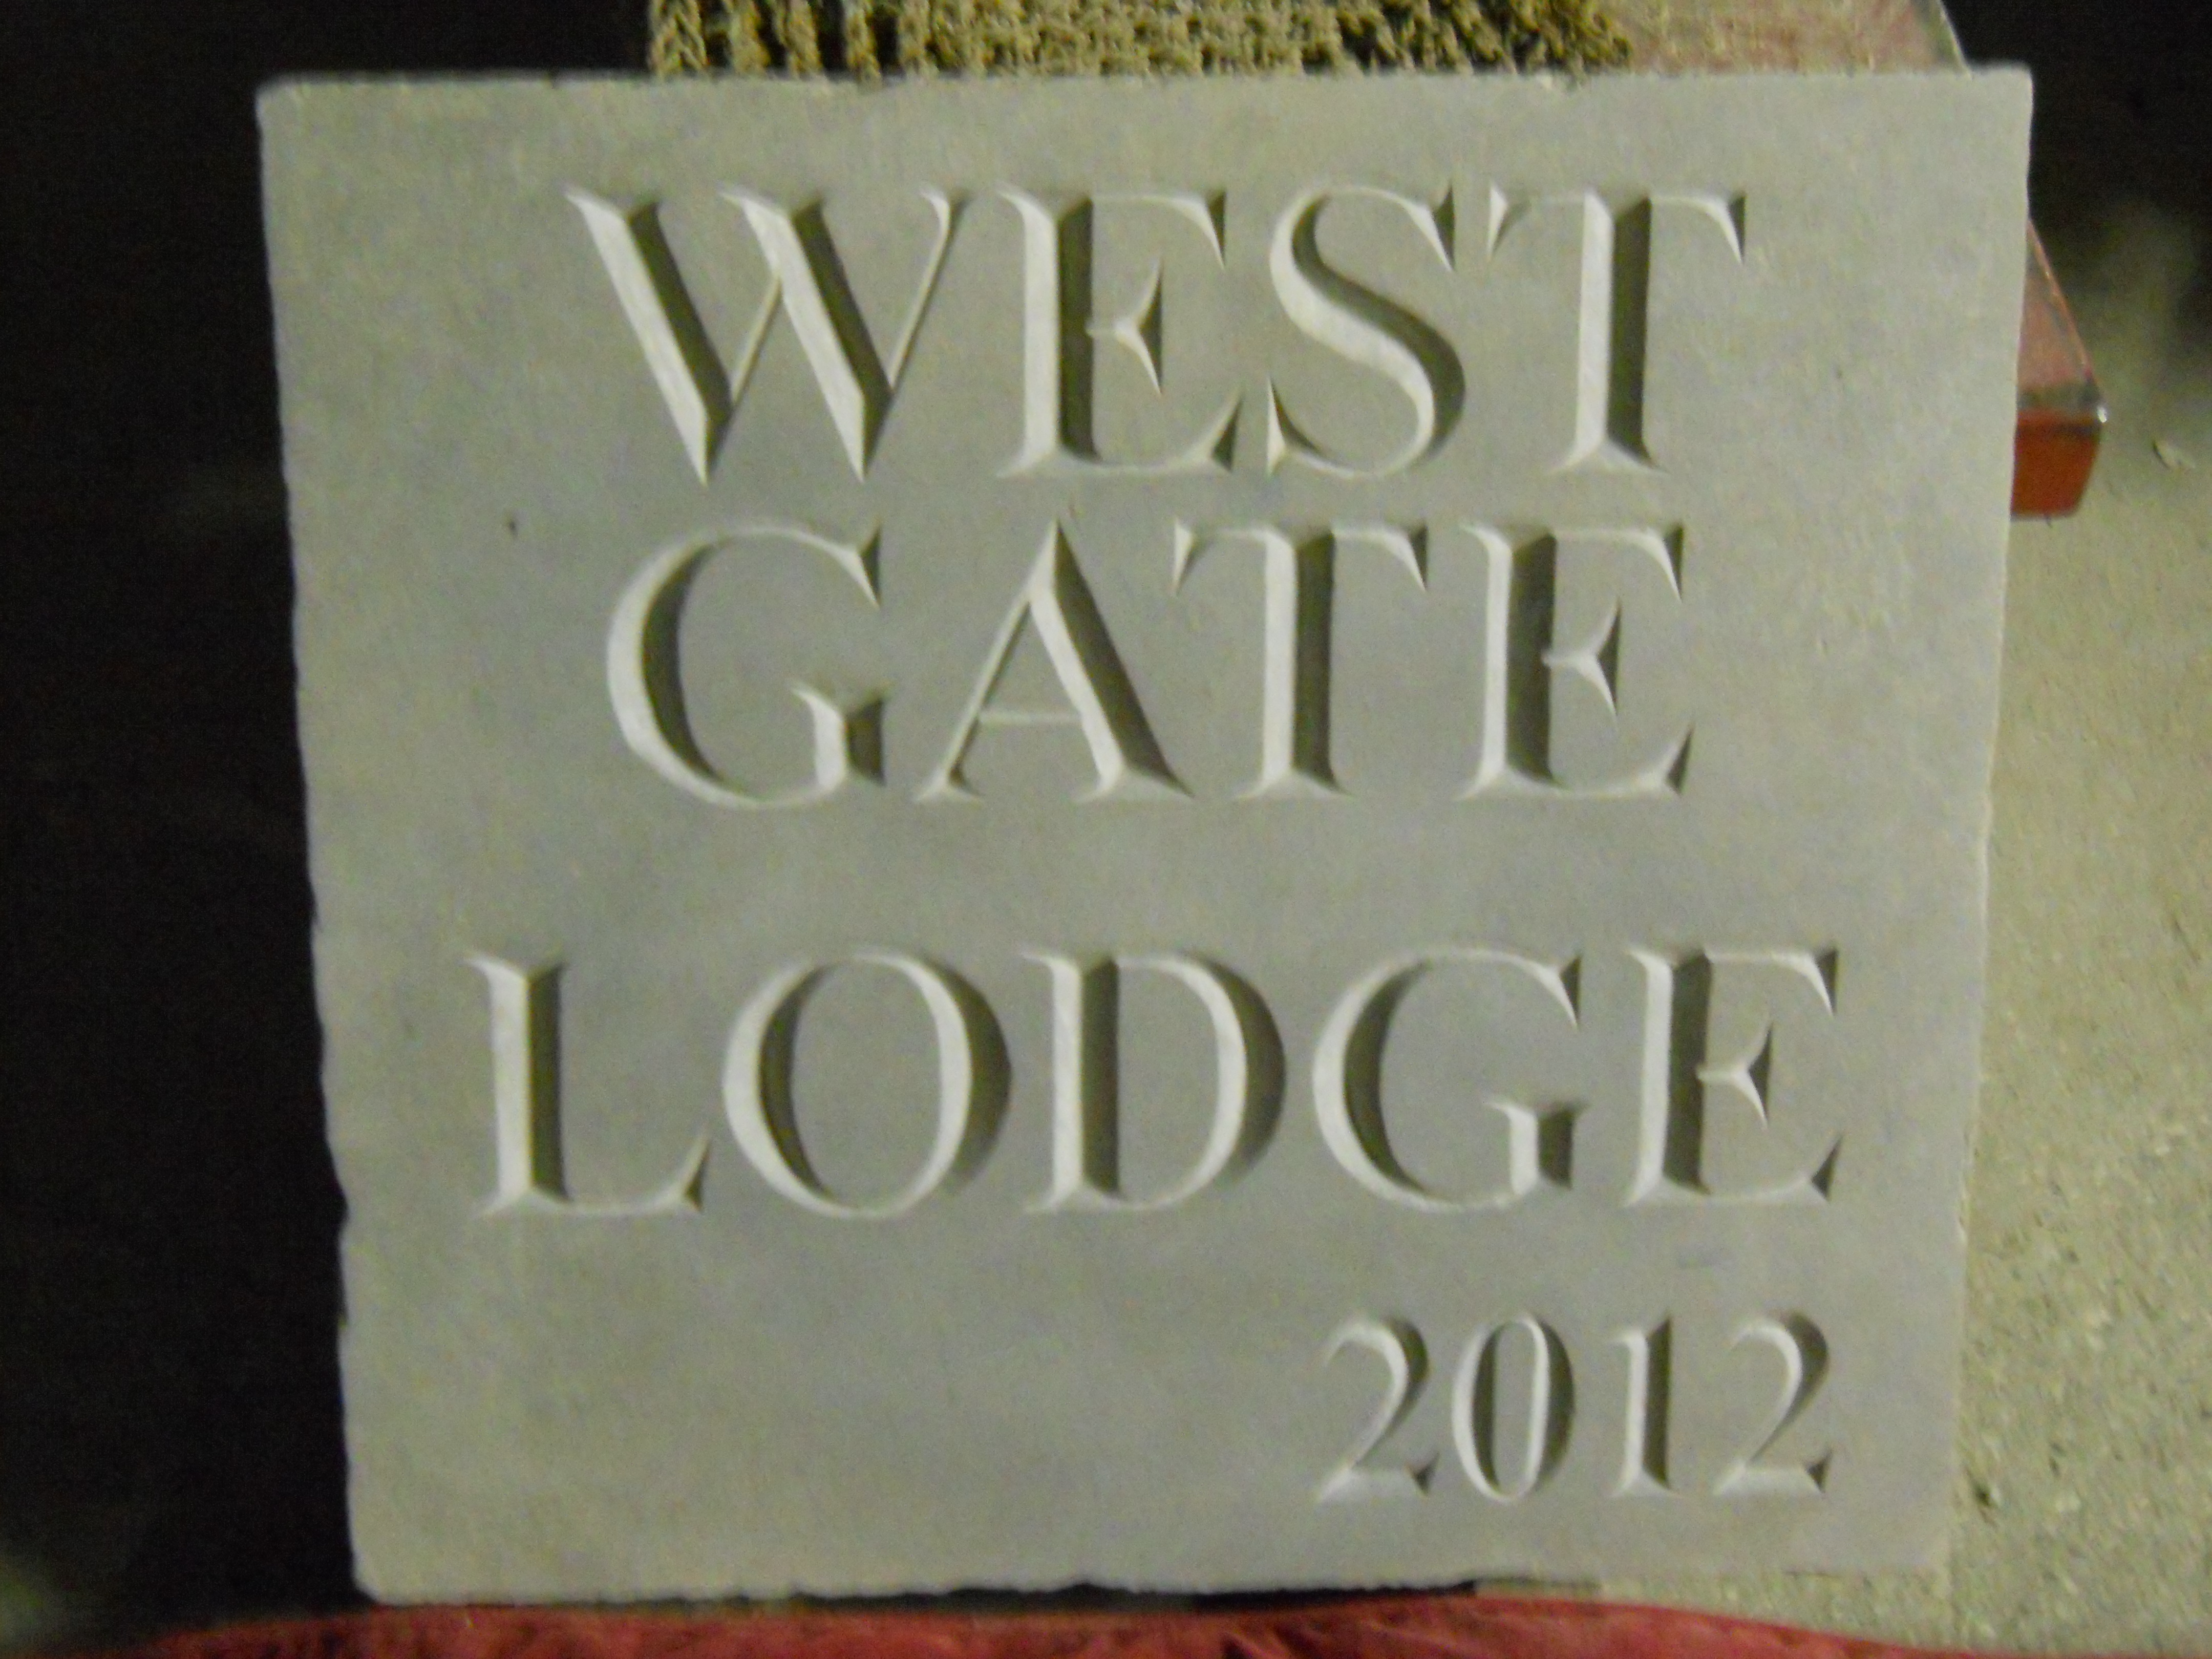 'West Gate Lodge' - carved house sign